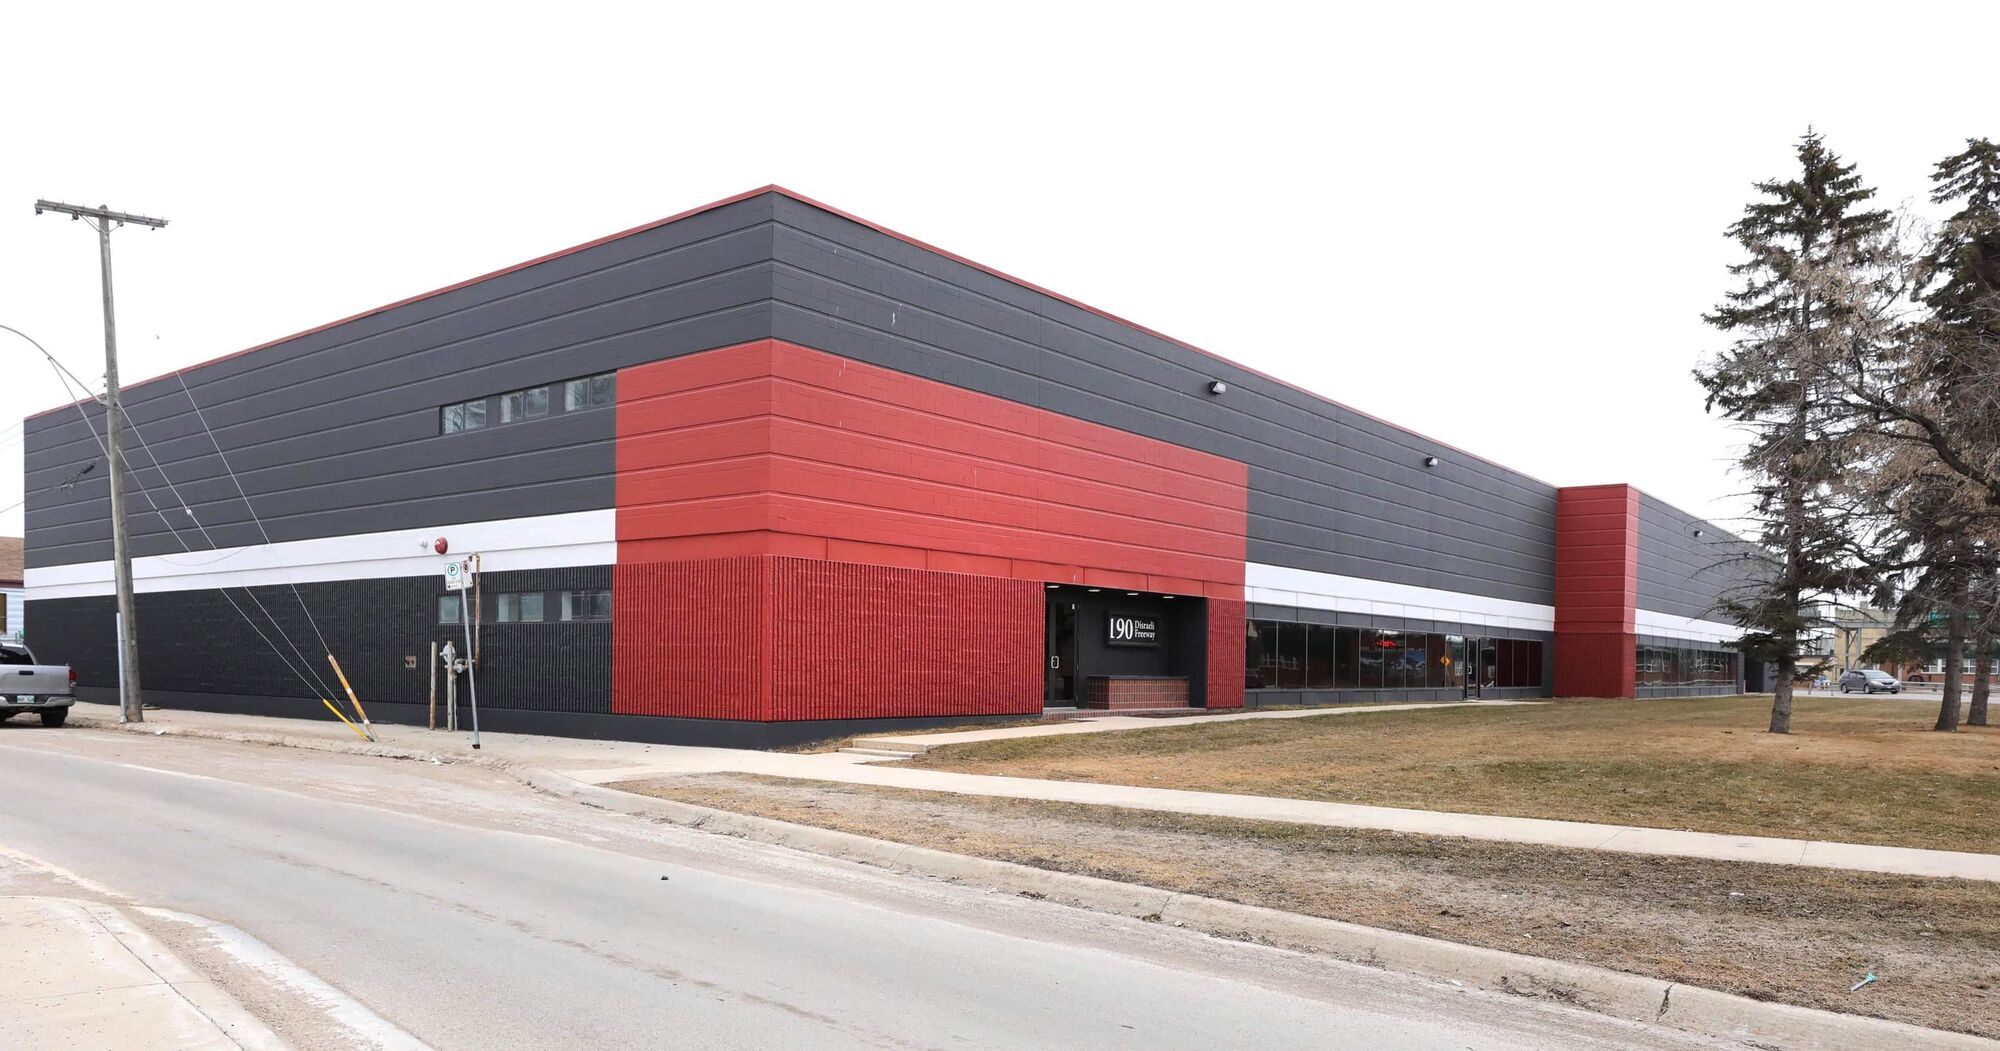 The Main Street Project is setting up a new 190-bed shelter in a 72,000 square-foot building that was recently donated to them. (Ruth Bonneville / Winnipeg Free Press)